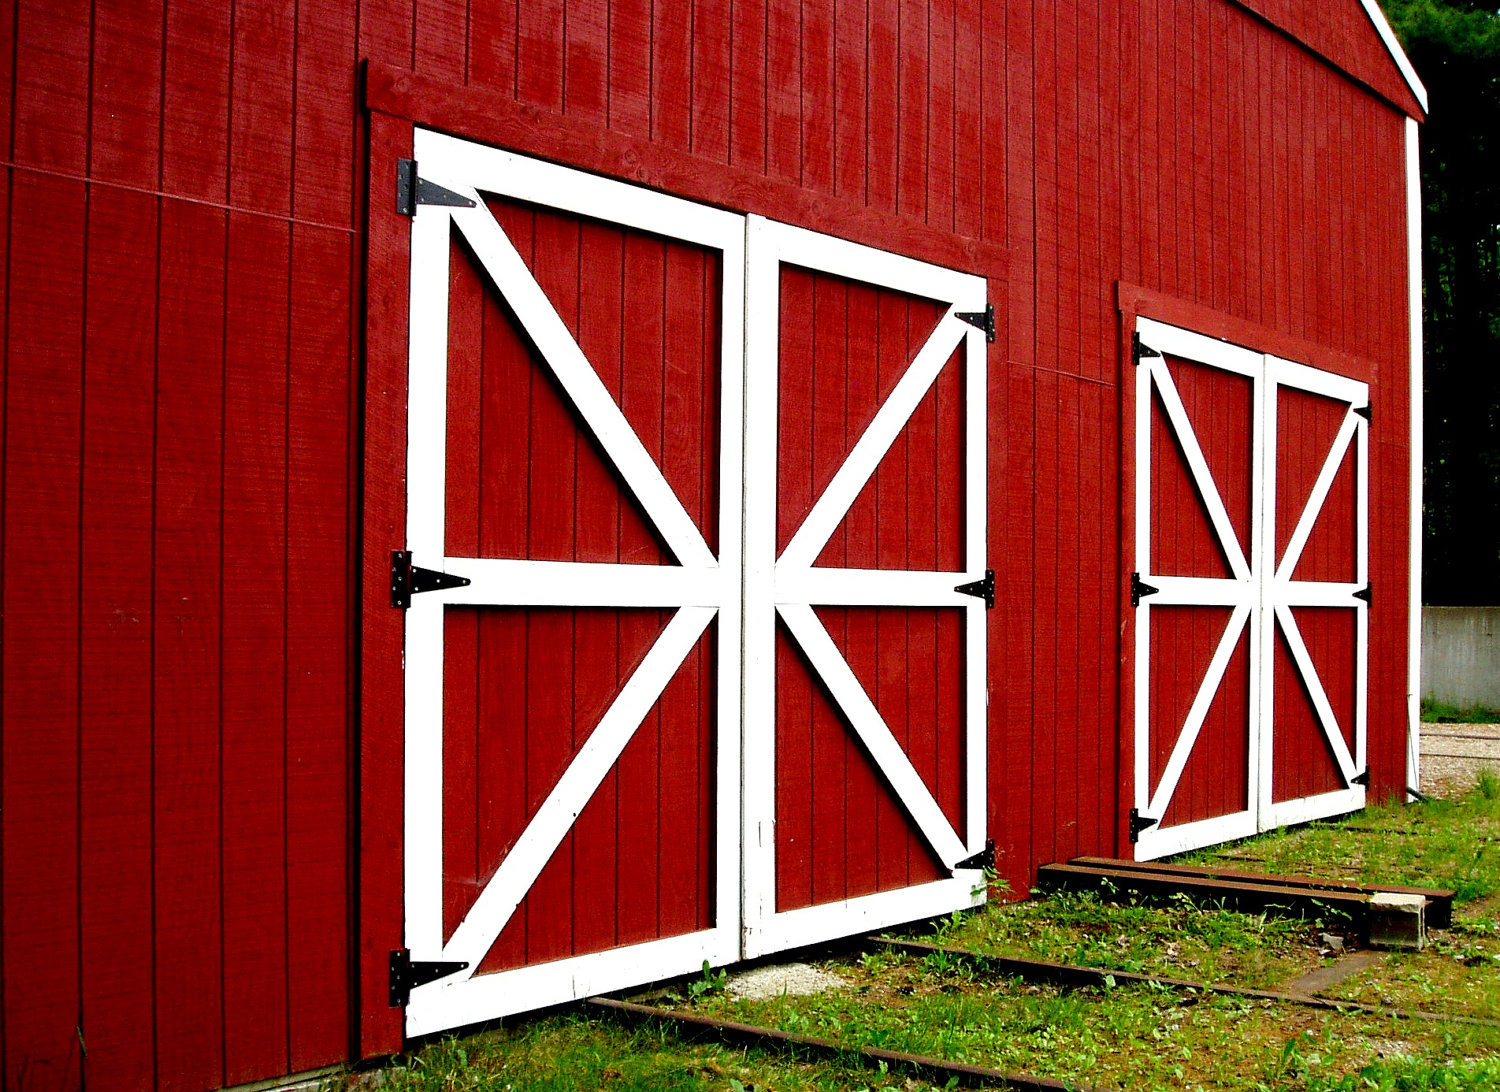 Rustic decor red photography barn doors photo by 132photography - Wall decor photography ...